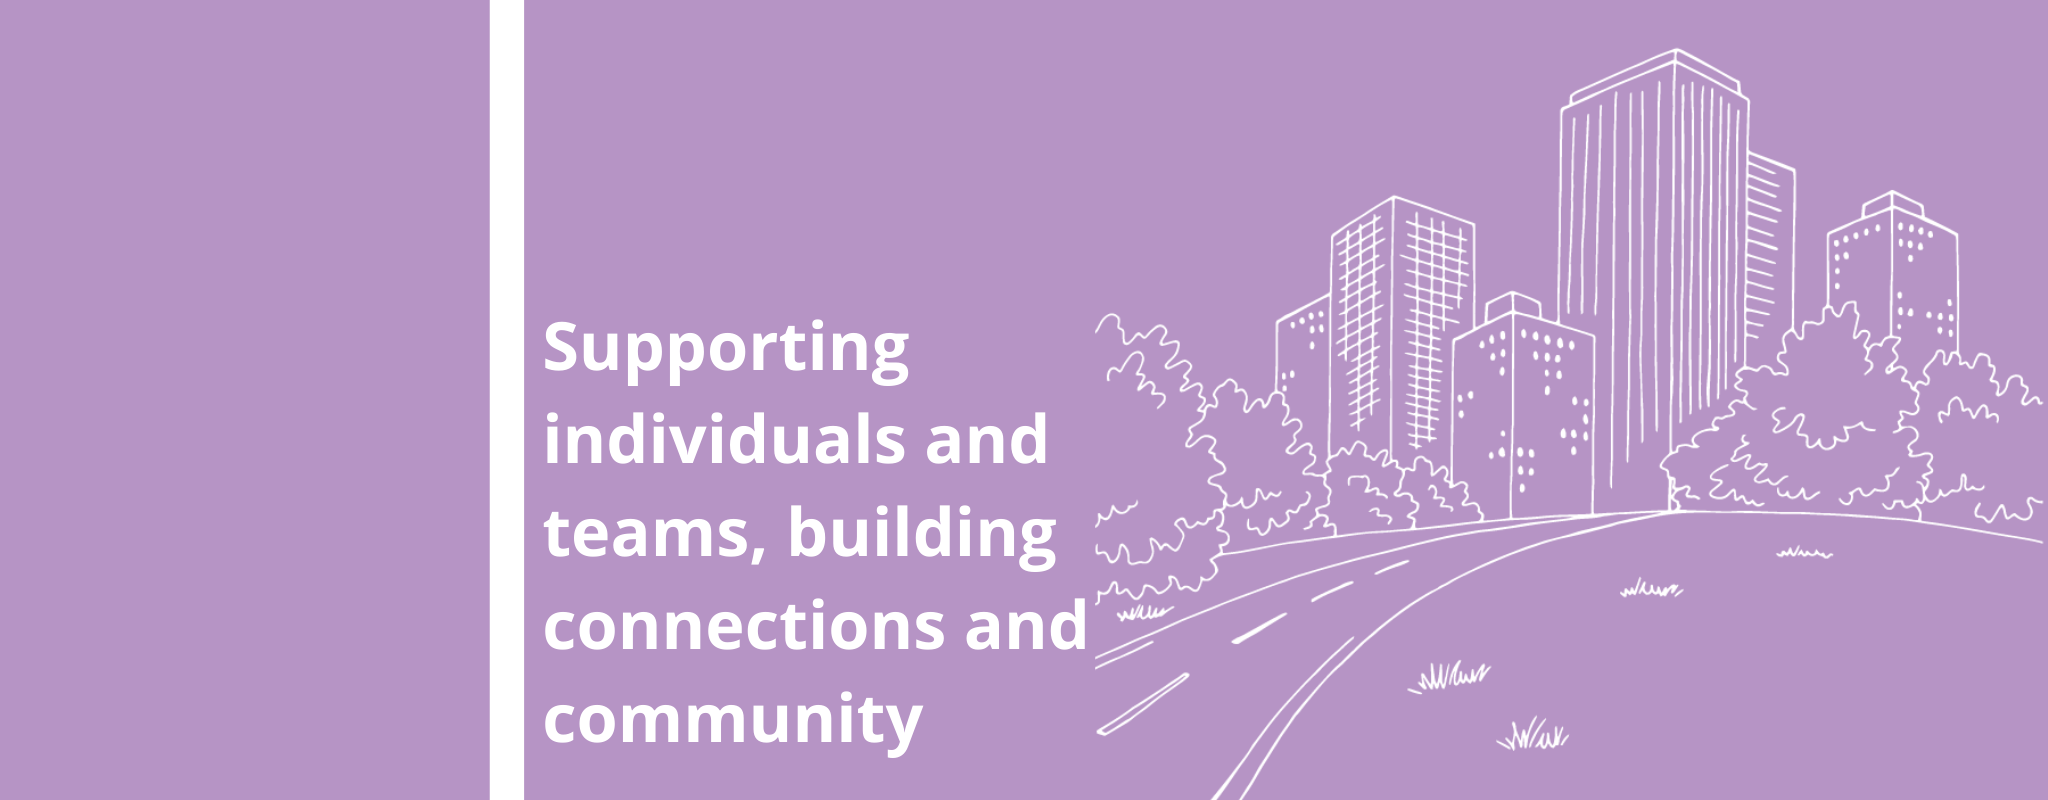 Supporting individualds and teams, building connections and community